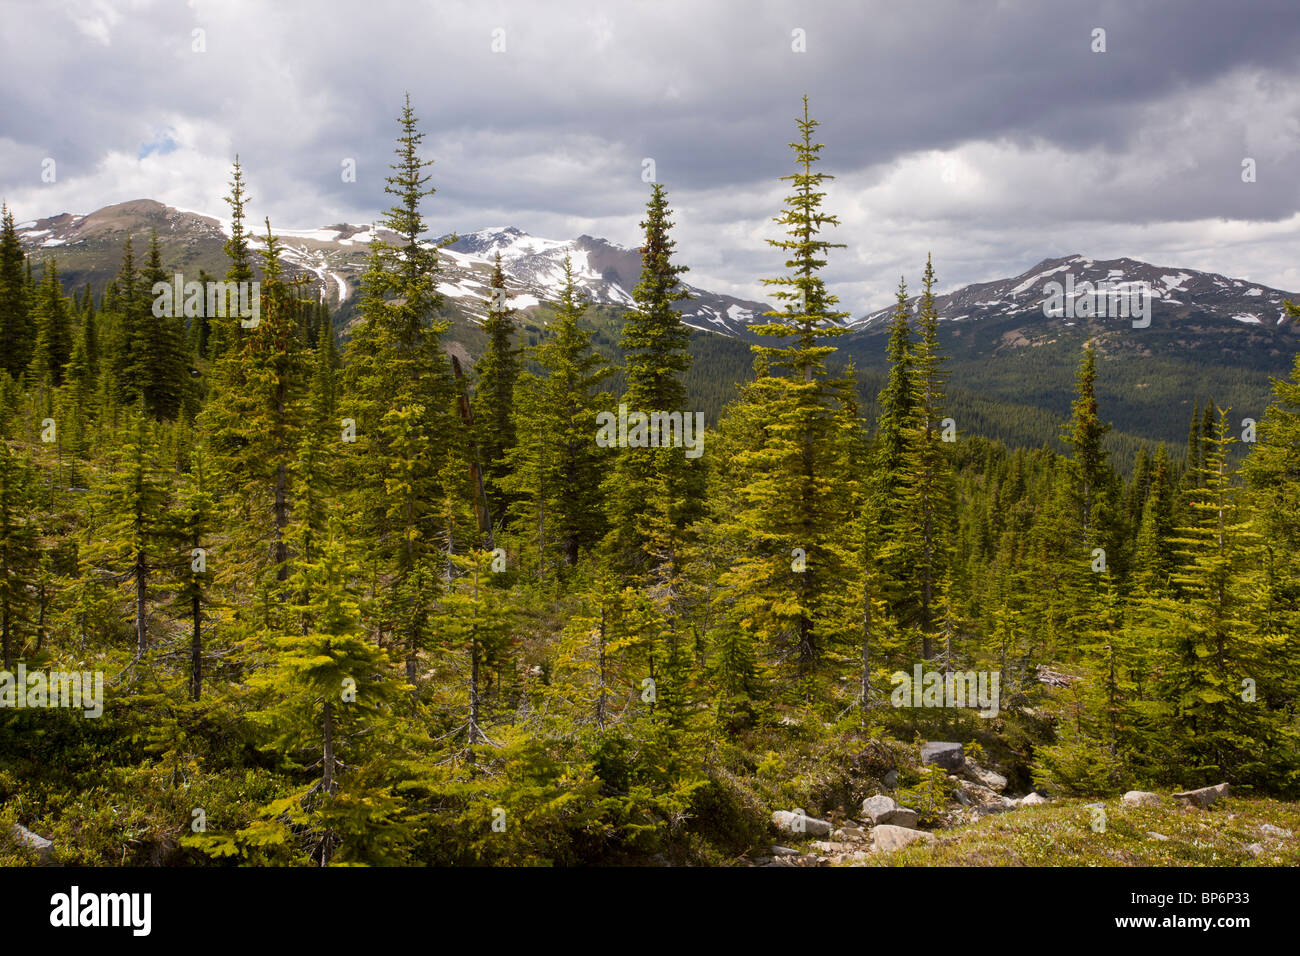 Mixed coniferous forest (spruce, fir and pine) in the Bald Hills above Maligne Lake, Jasper National Park, Rockies, - Stock Image